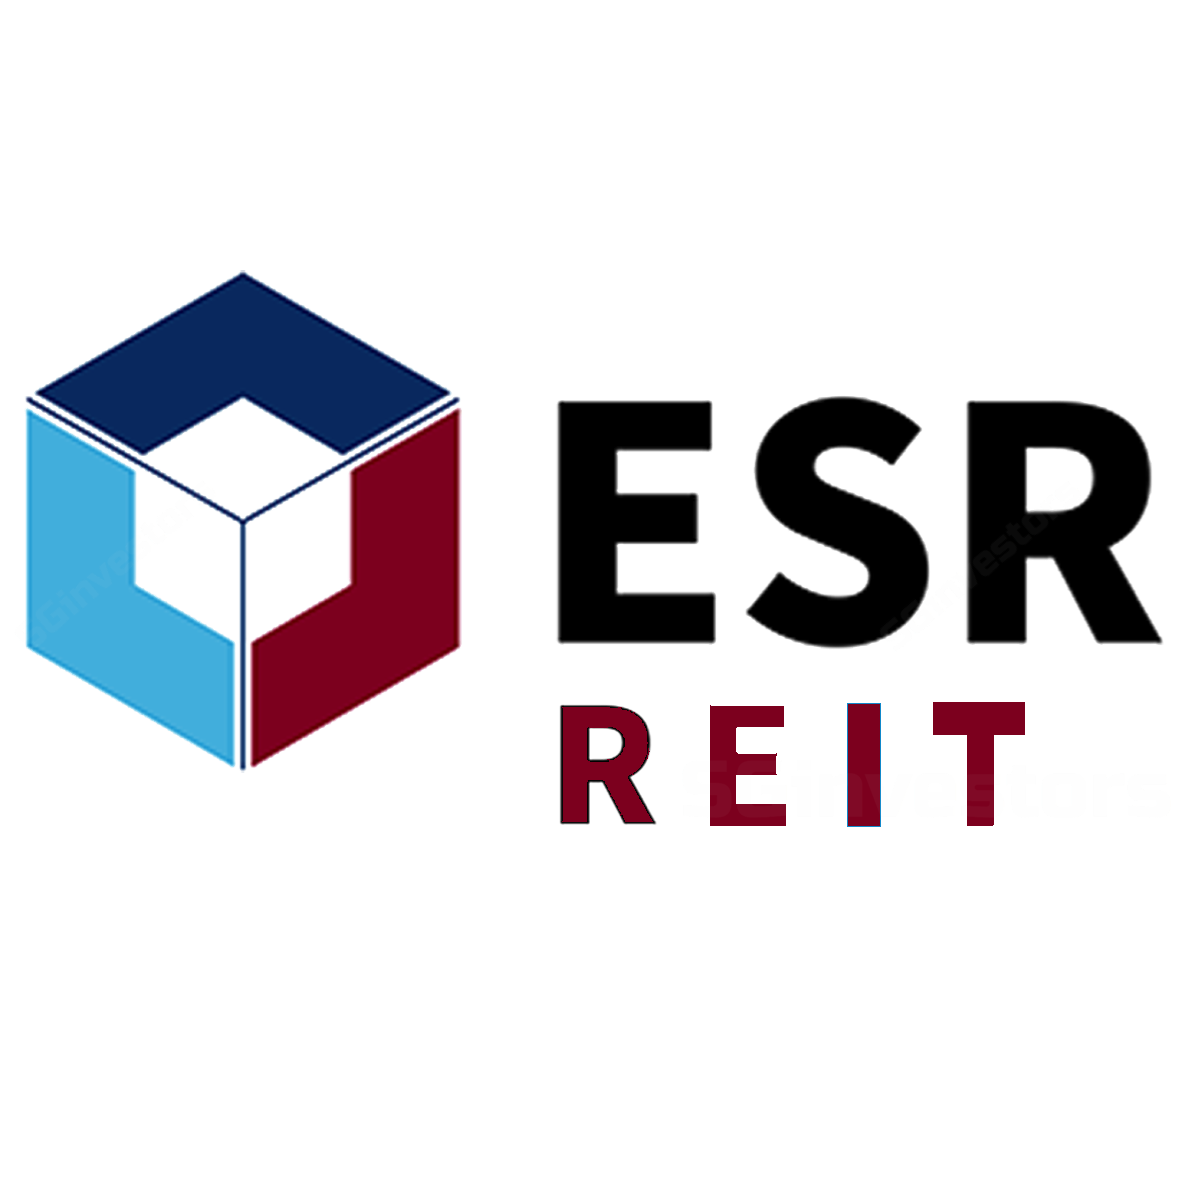 ESR REIT - DBS Vickers 2017-07-17: Waiting For A New Chapter To Unfold